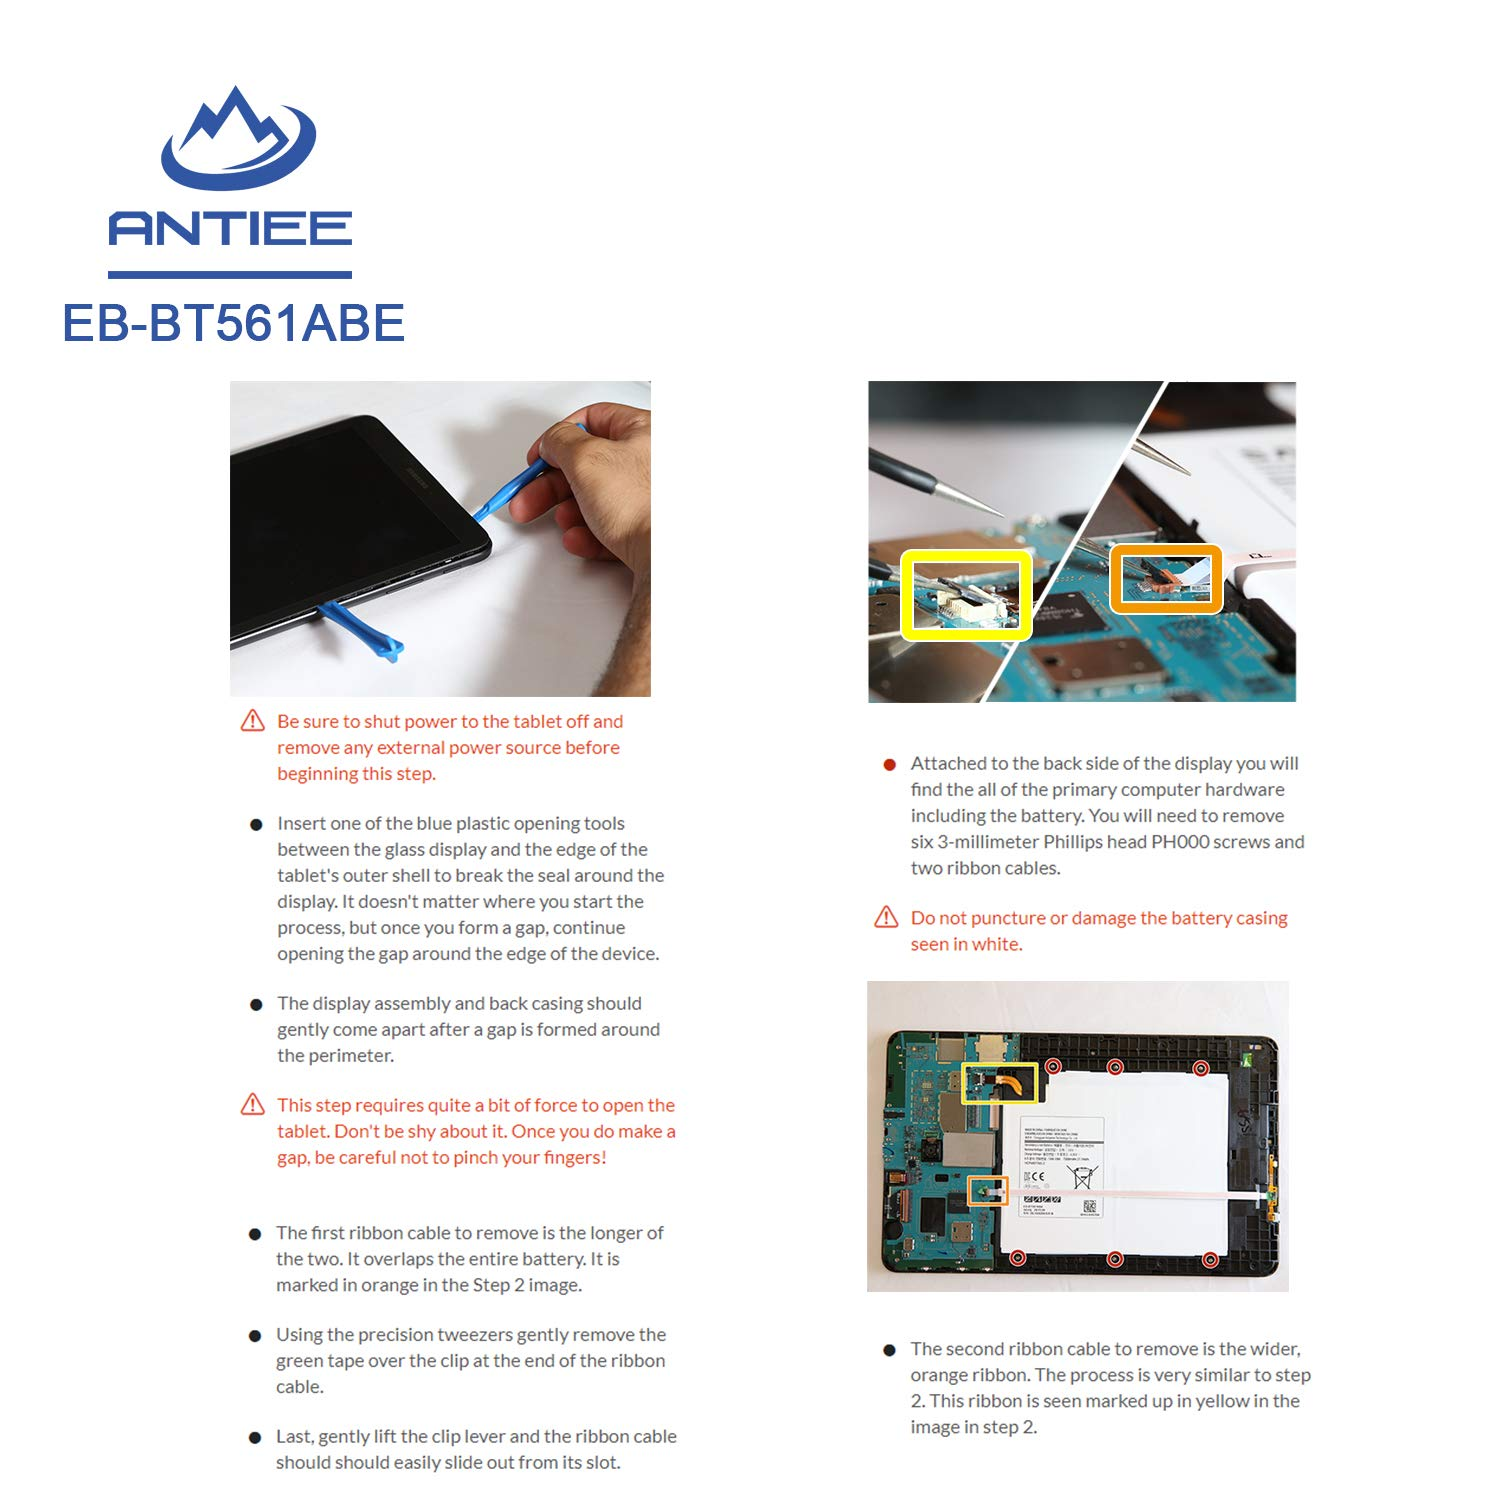 ANTIEE Tablet EB-BT561ABE Battery for Samsung Galaxy Tab E 9.6 T560 T561 SM-T560 SM-T565 WiFi SM-T561Y SM-T561M EB-BT561ABA With Tools 3.8V 5000mAh SM-T561 3G /& WiFi US /& Canada